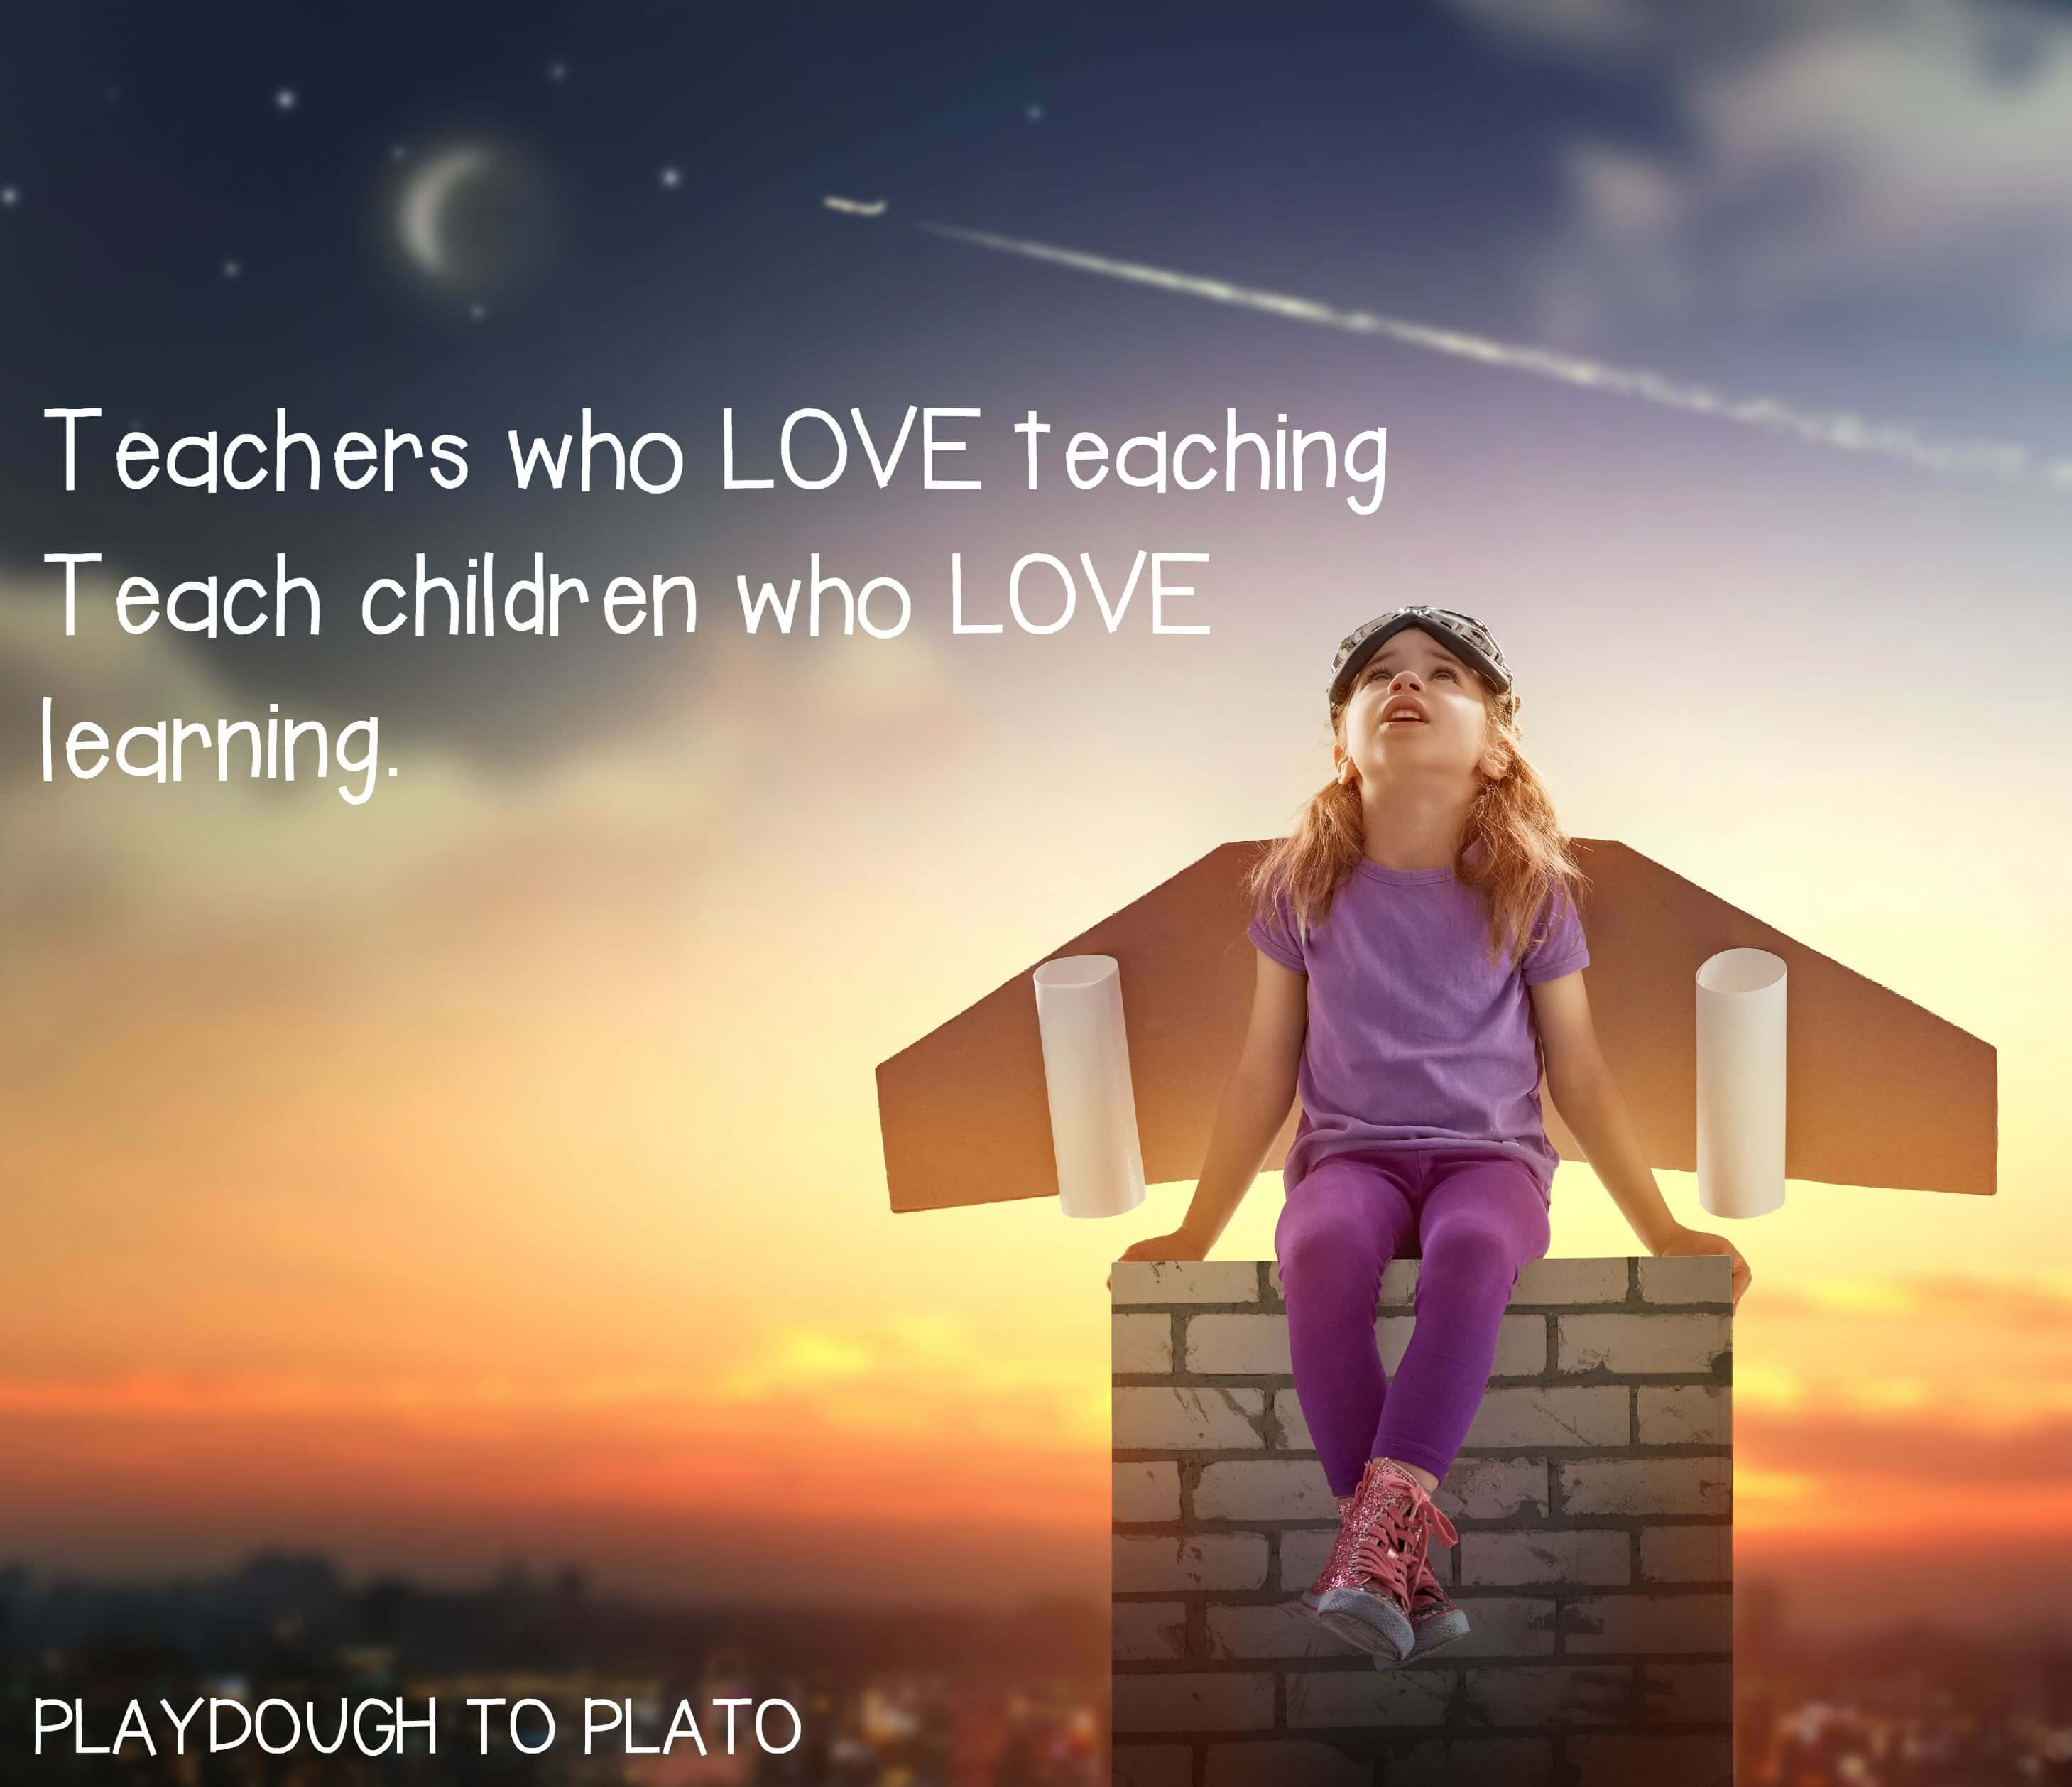 Love For Childrens Quotes 10 Inspiring Teacher Quotes  Playdough To Plato